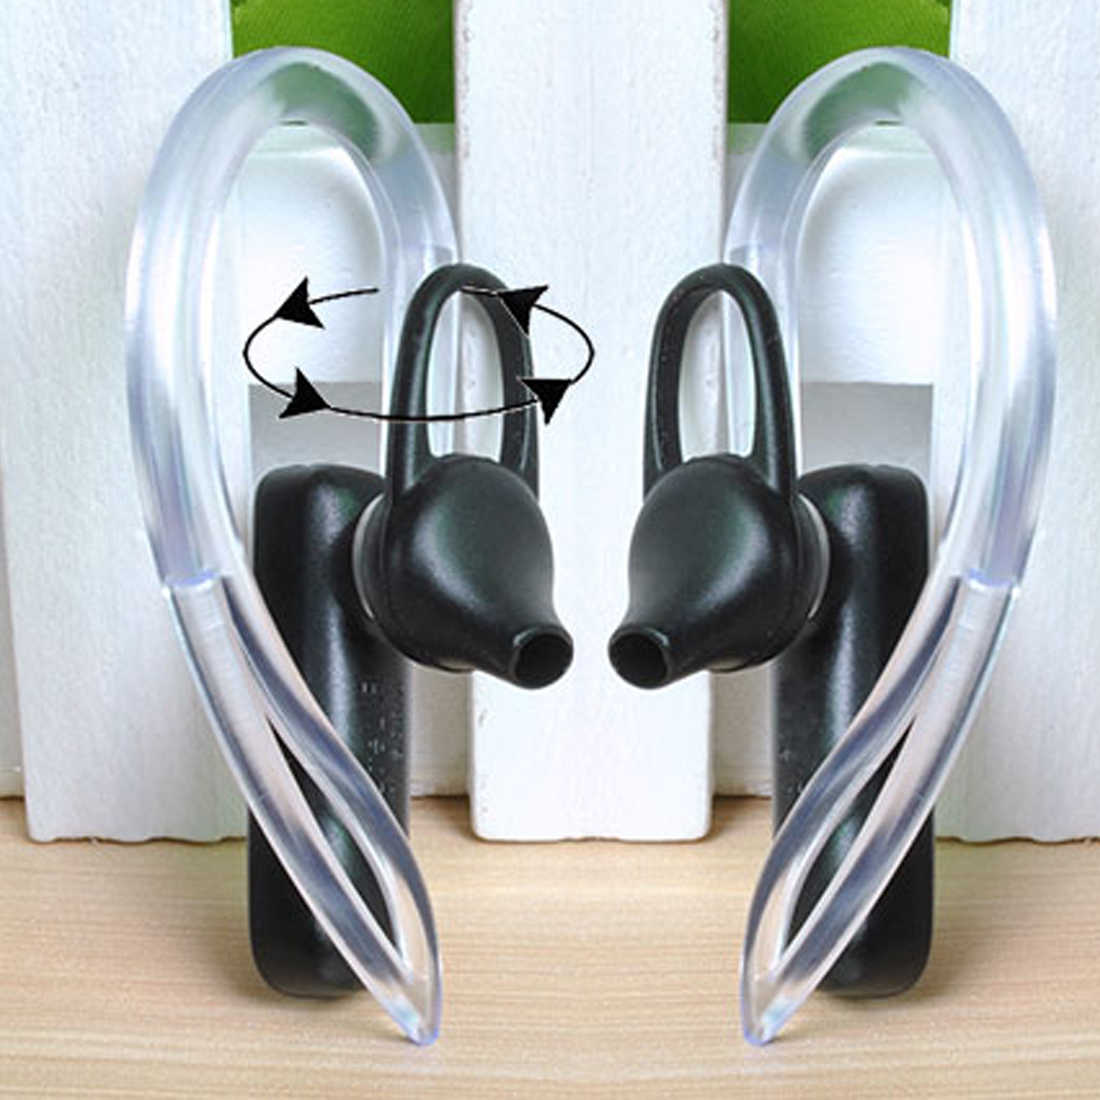 2Pcs 6 Mm 7 Mm 8 Mm 10 Mm Bluetooth Earphone Silikon Transparan Sangkutan Telinga Lingkaran Klip Headset Ear Hook pengganti Aksesoris